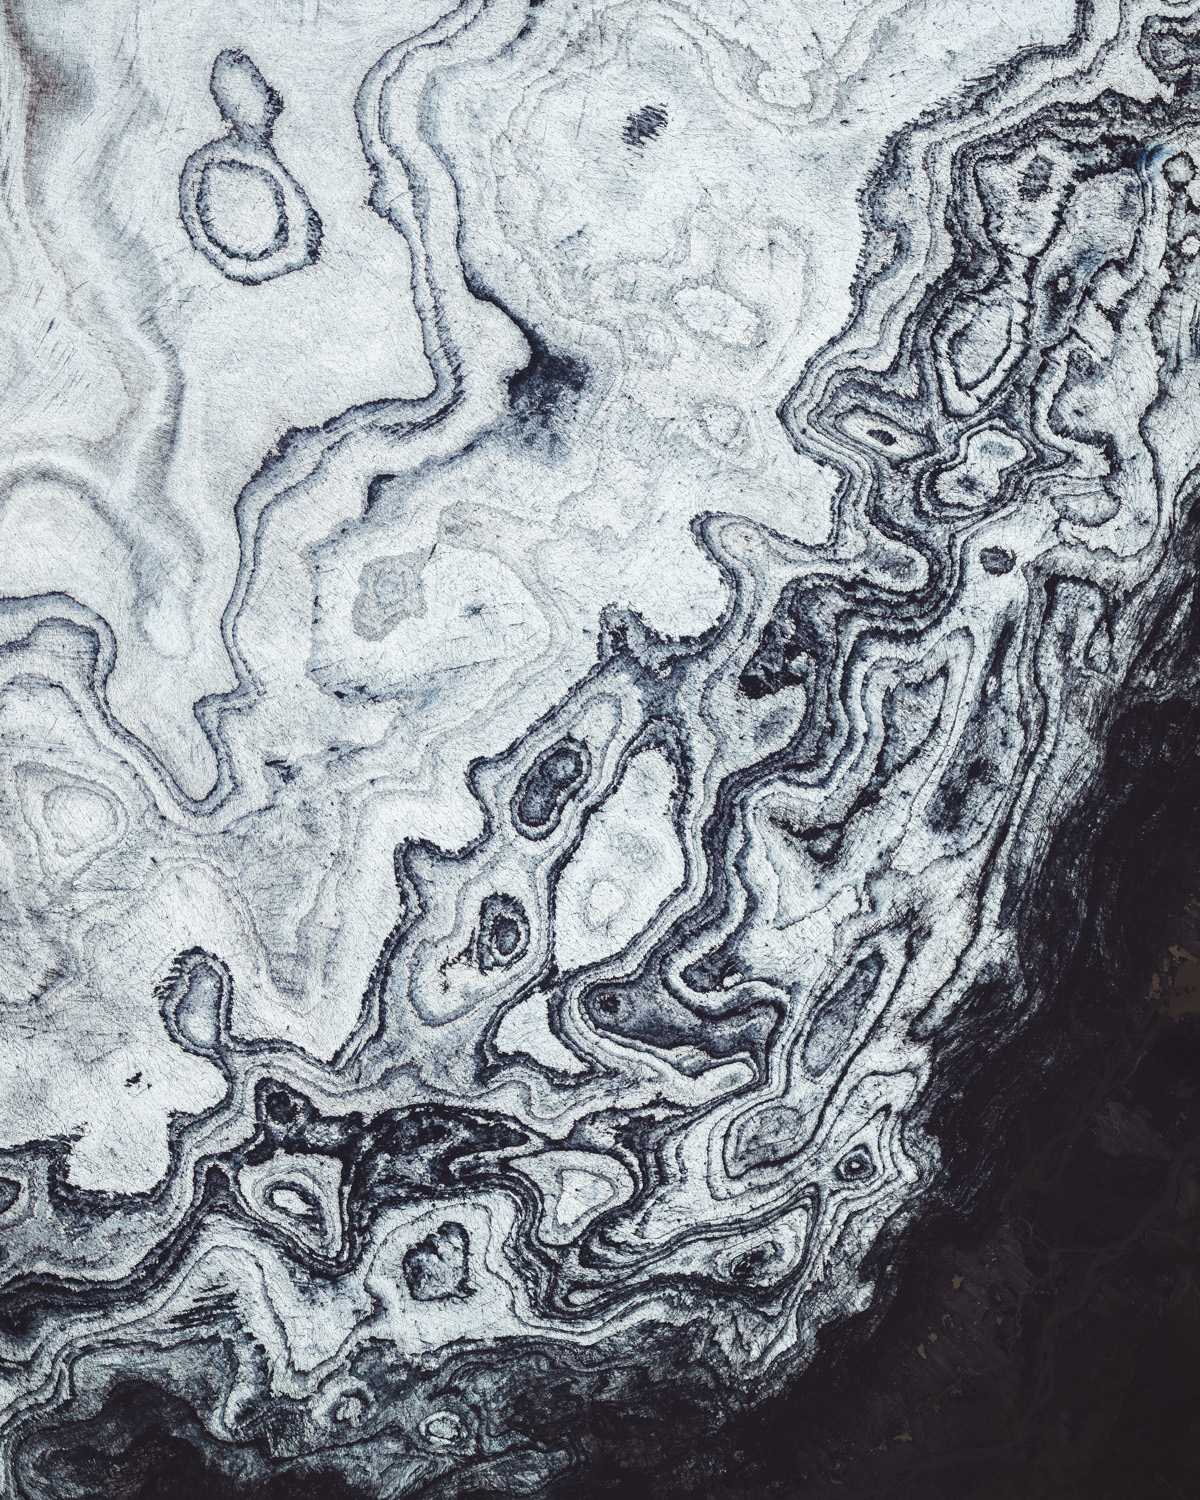 Glacial ice and volcanic sediment form contrasting patterns along the southwestern rim of Vatnajökull Glacier in Iceland. Vatnajökull is the largest and most voluminous ice cap in Iceland, covering an area of 3,100 square miles (7,900 square km) — roughly 8% of the country's total landmass. Underneath it are several volcanoes, many of which continue to erupt and can burst weakened ice, leading to glacial lake outburst floods and landslides.  64.130241°, -17.978260°  Source imagery: Maxar Technologies